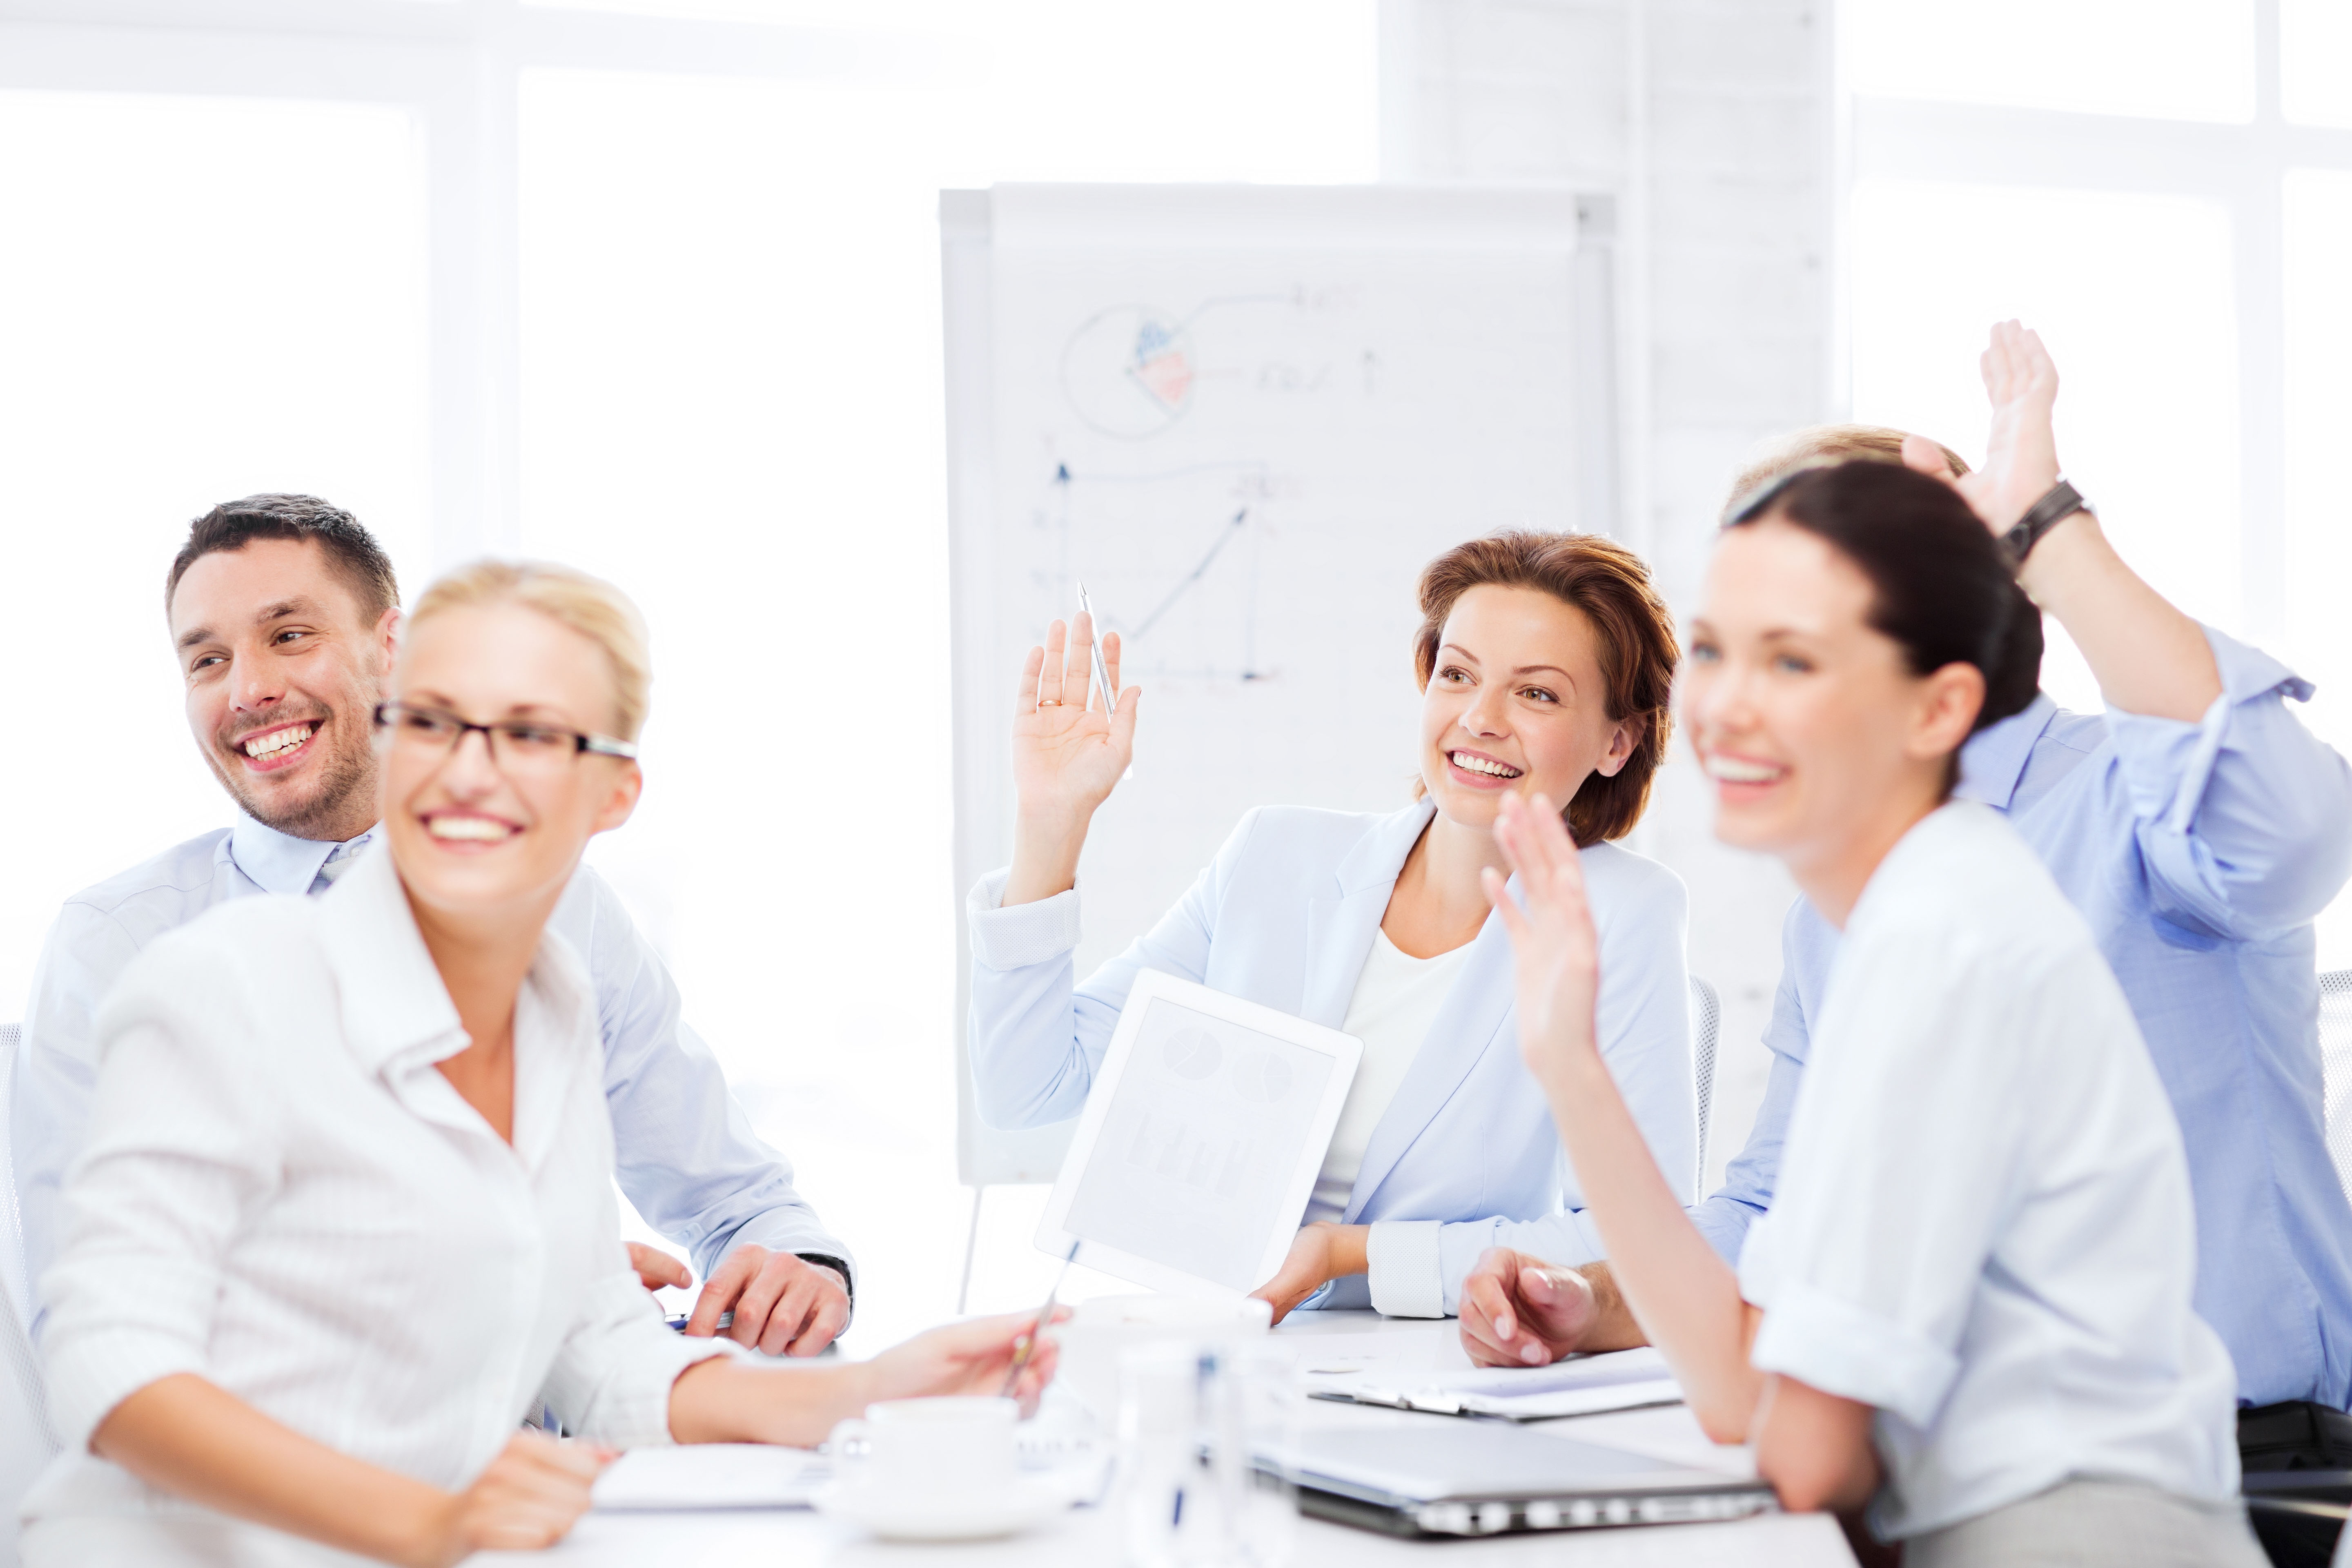 learning-and-developments-vital-role-nurturing-engaged-employees.jpg